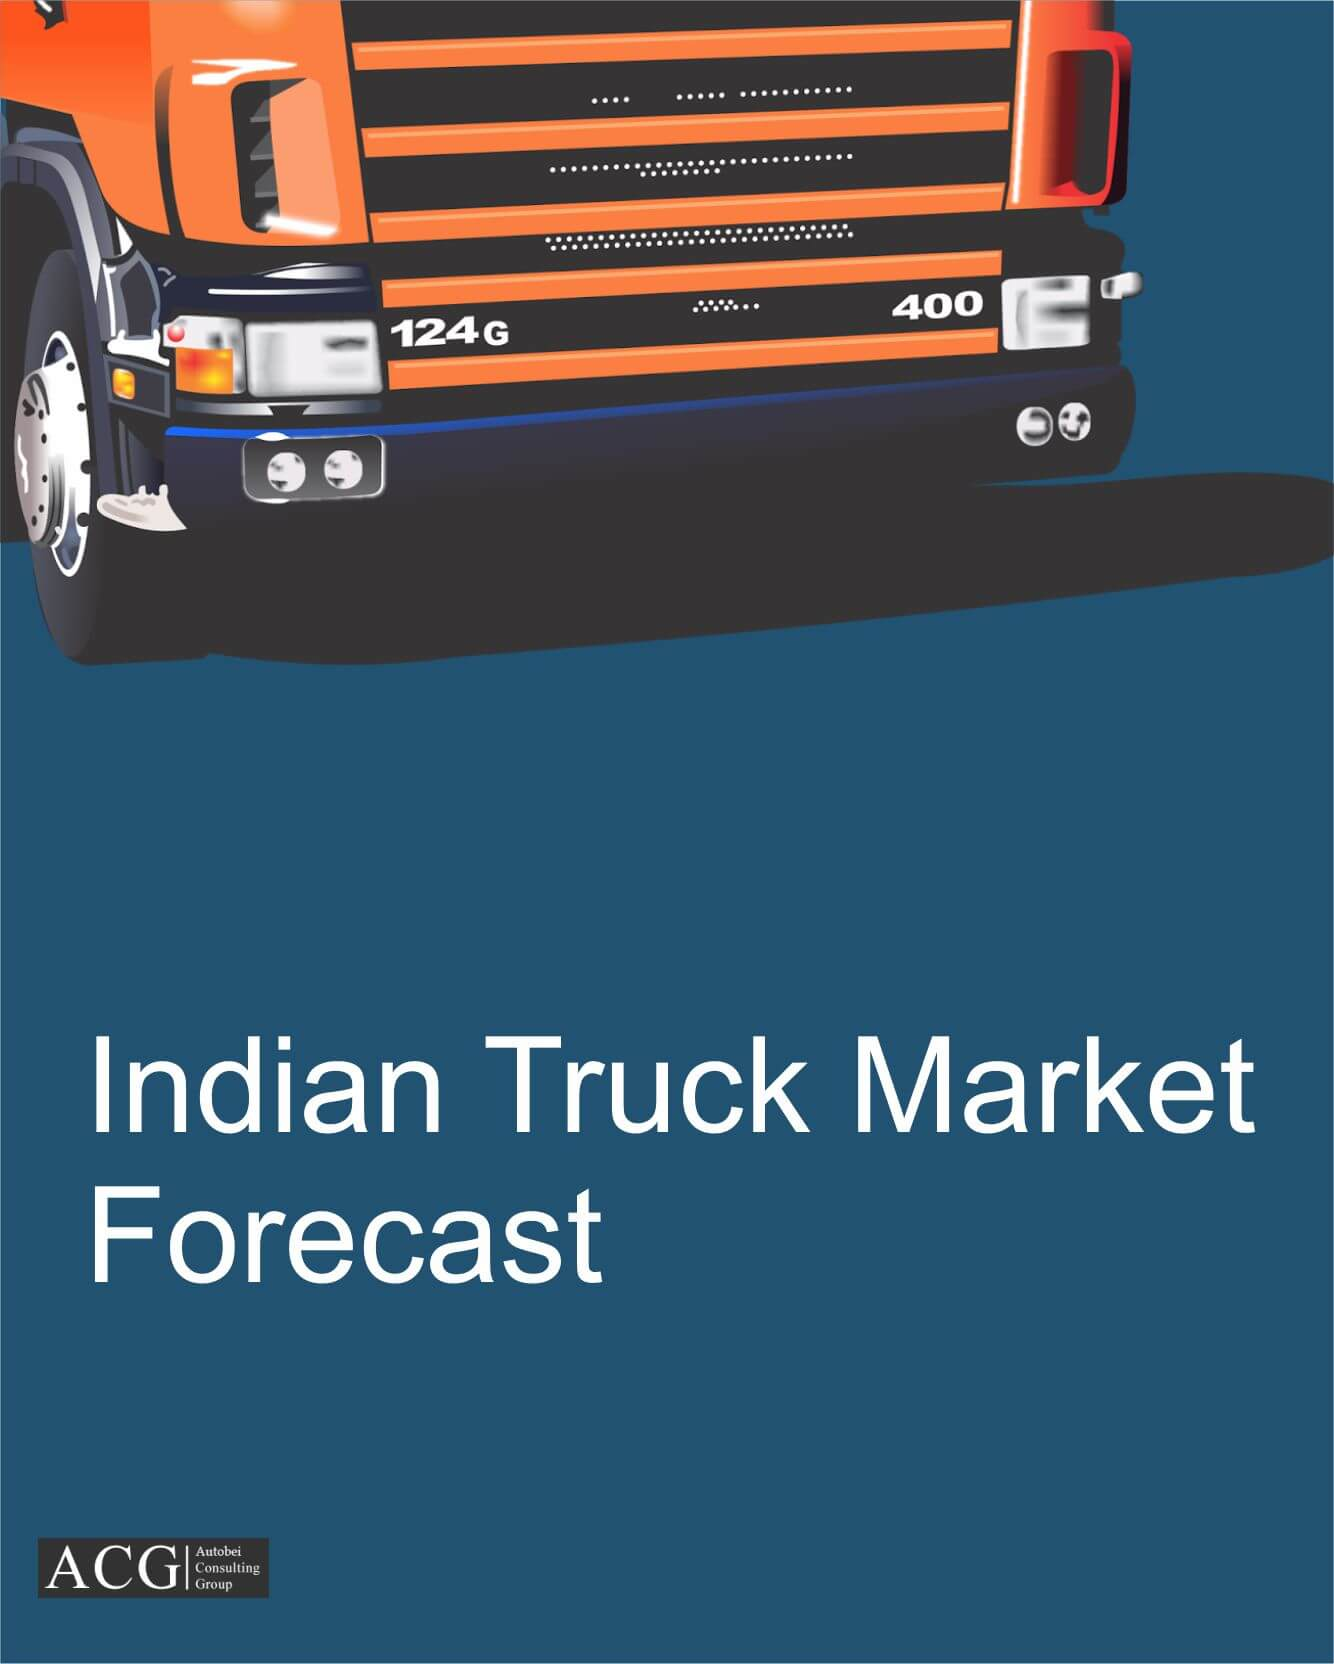 Indian Truck Market Forecast